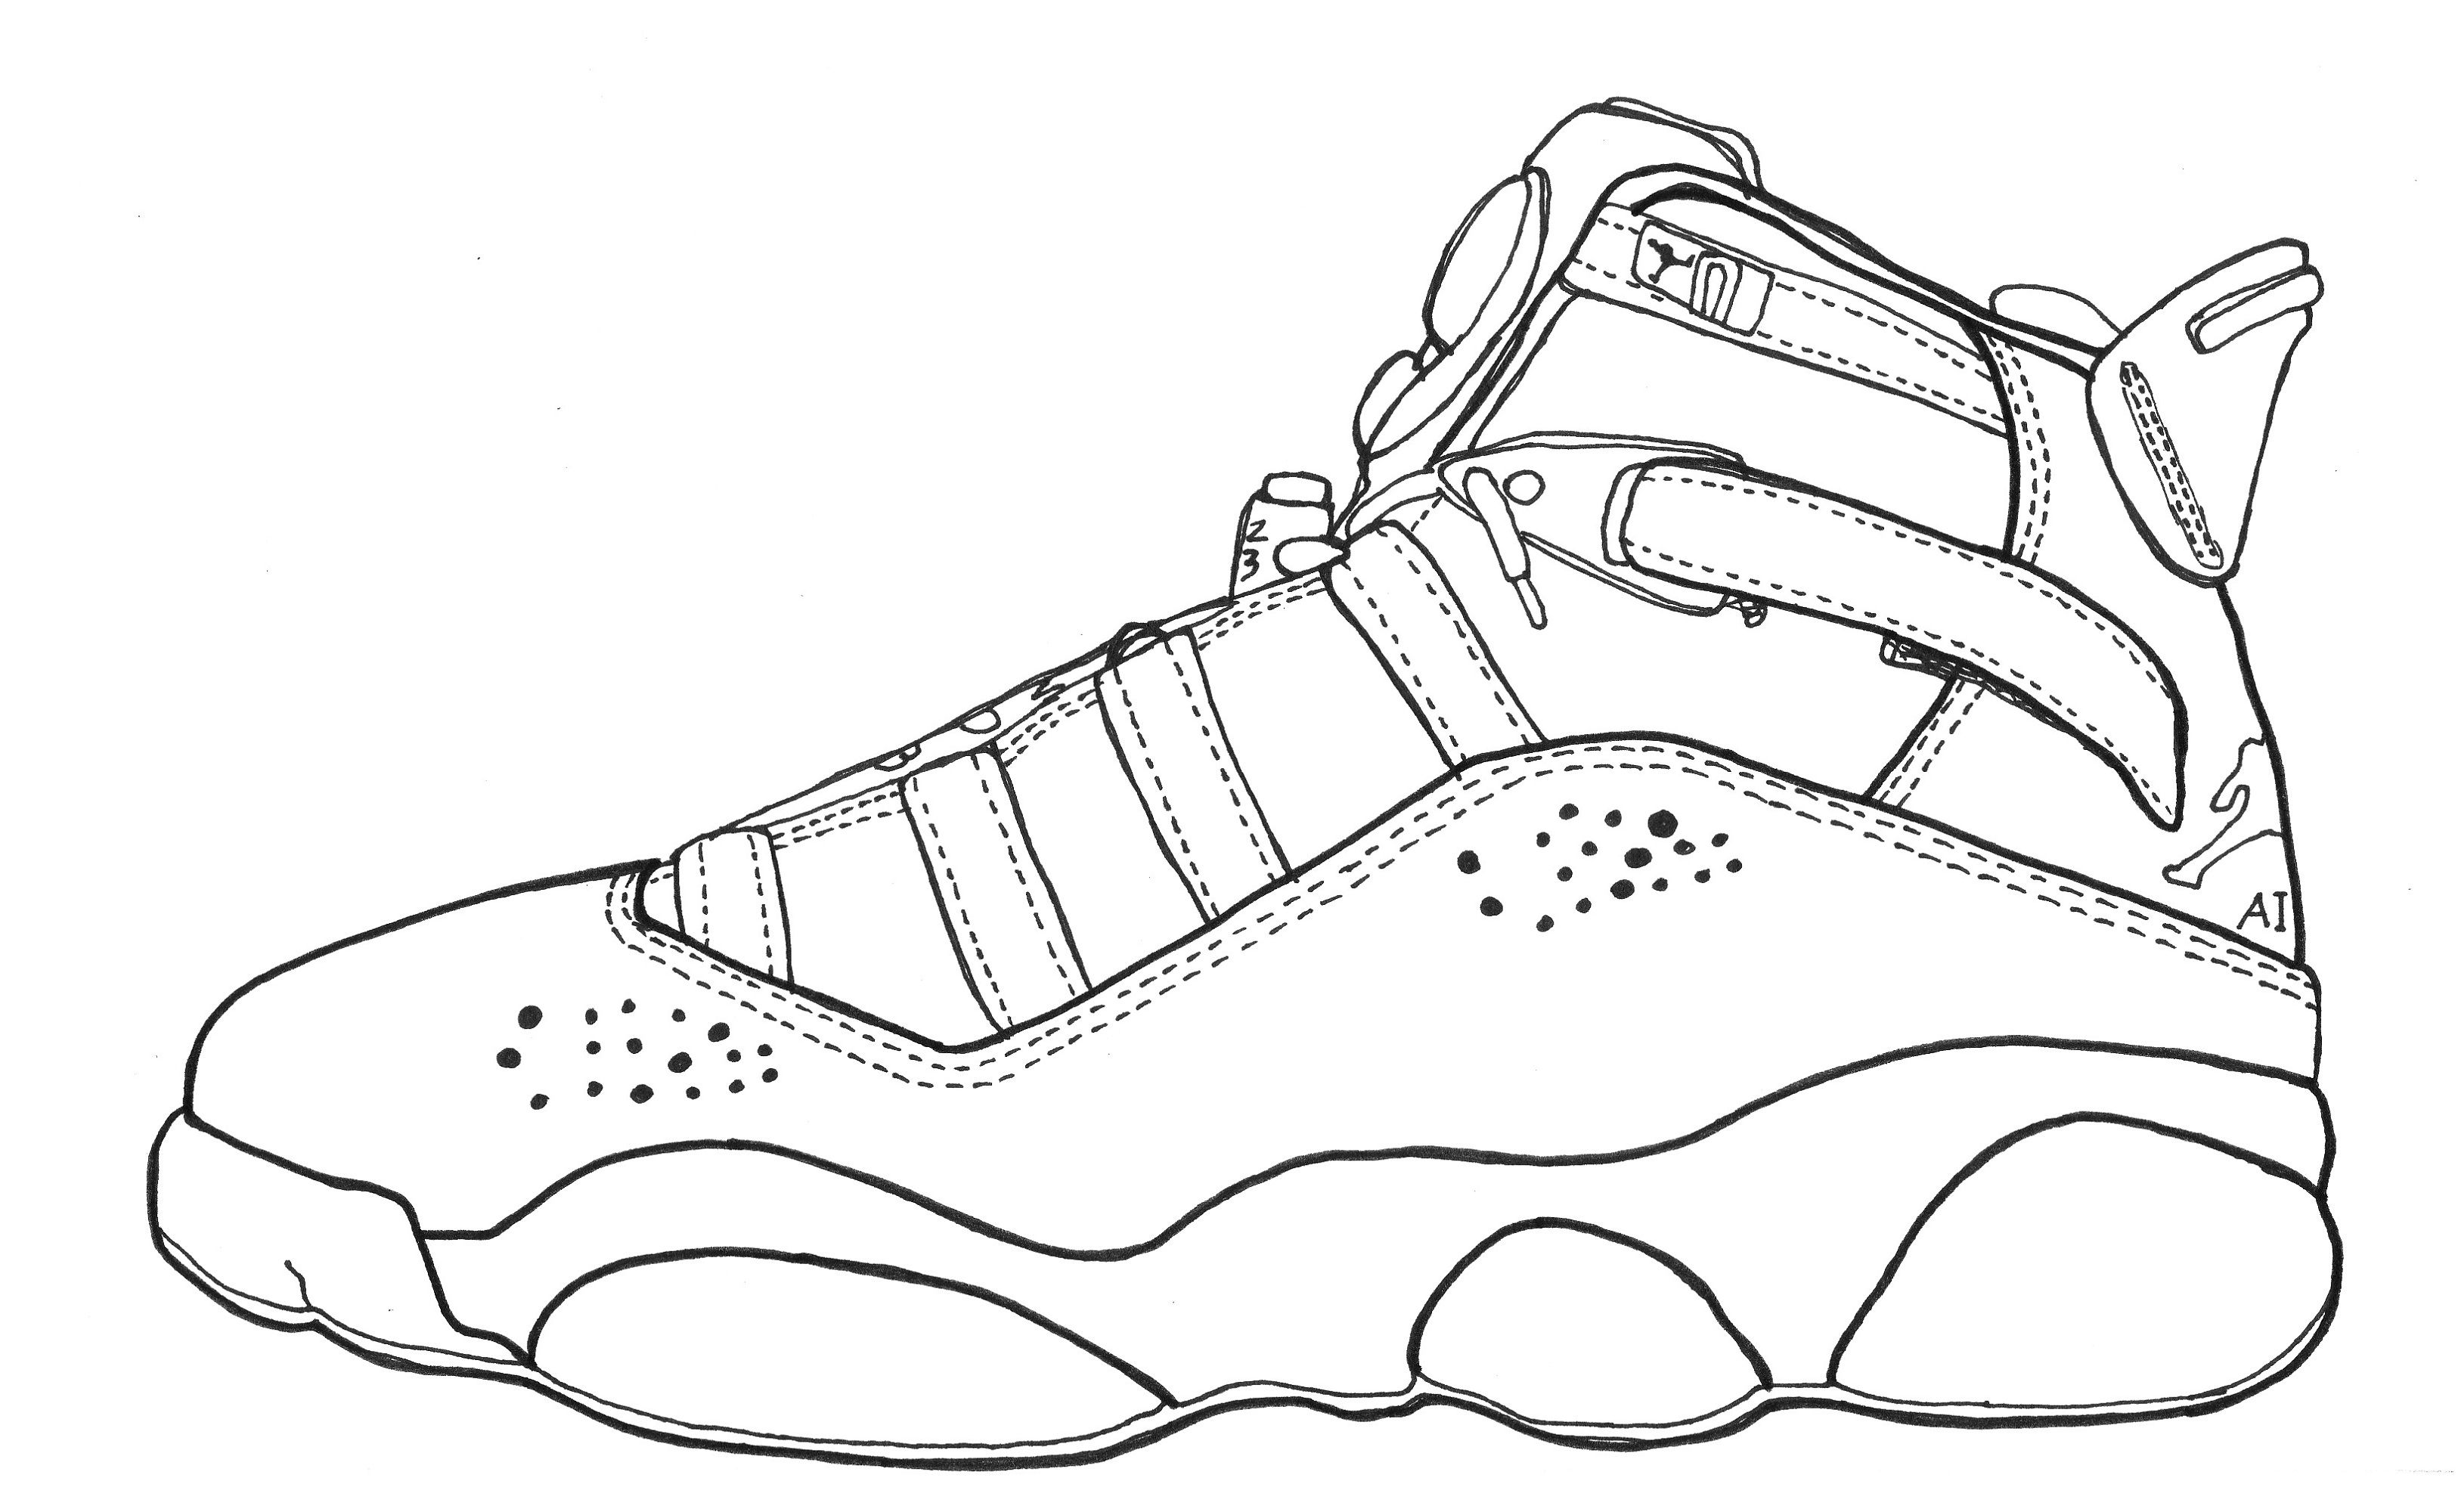 Jordan 11 Coloring Page For Exercise